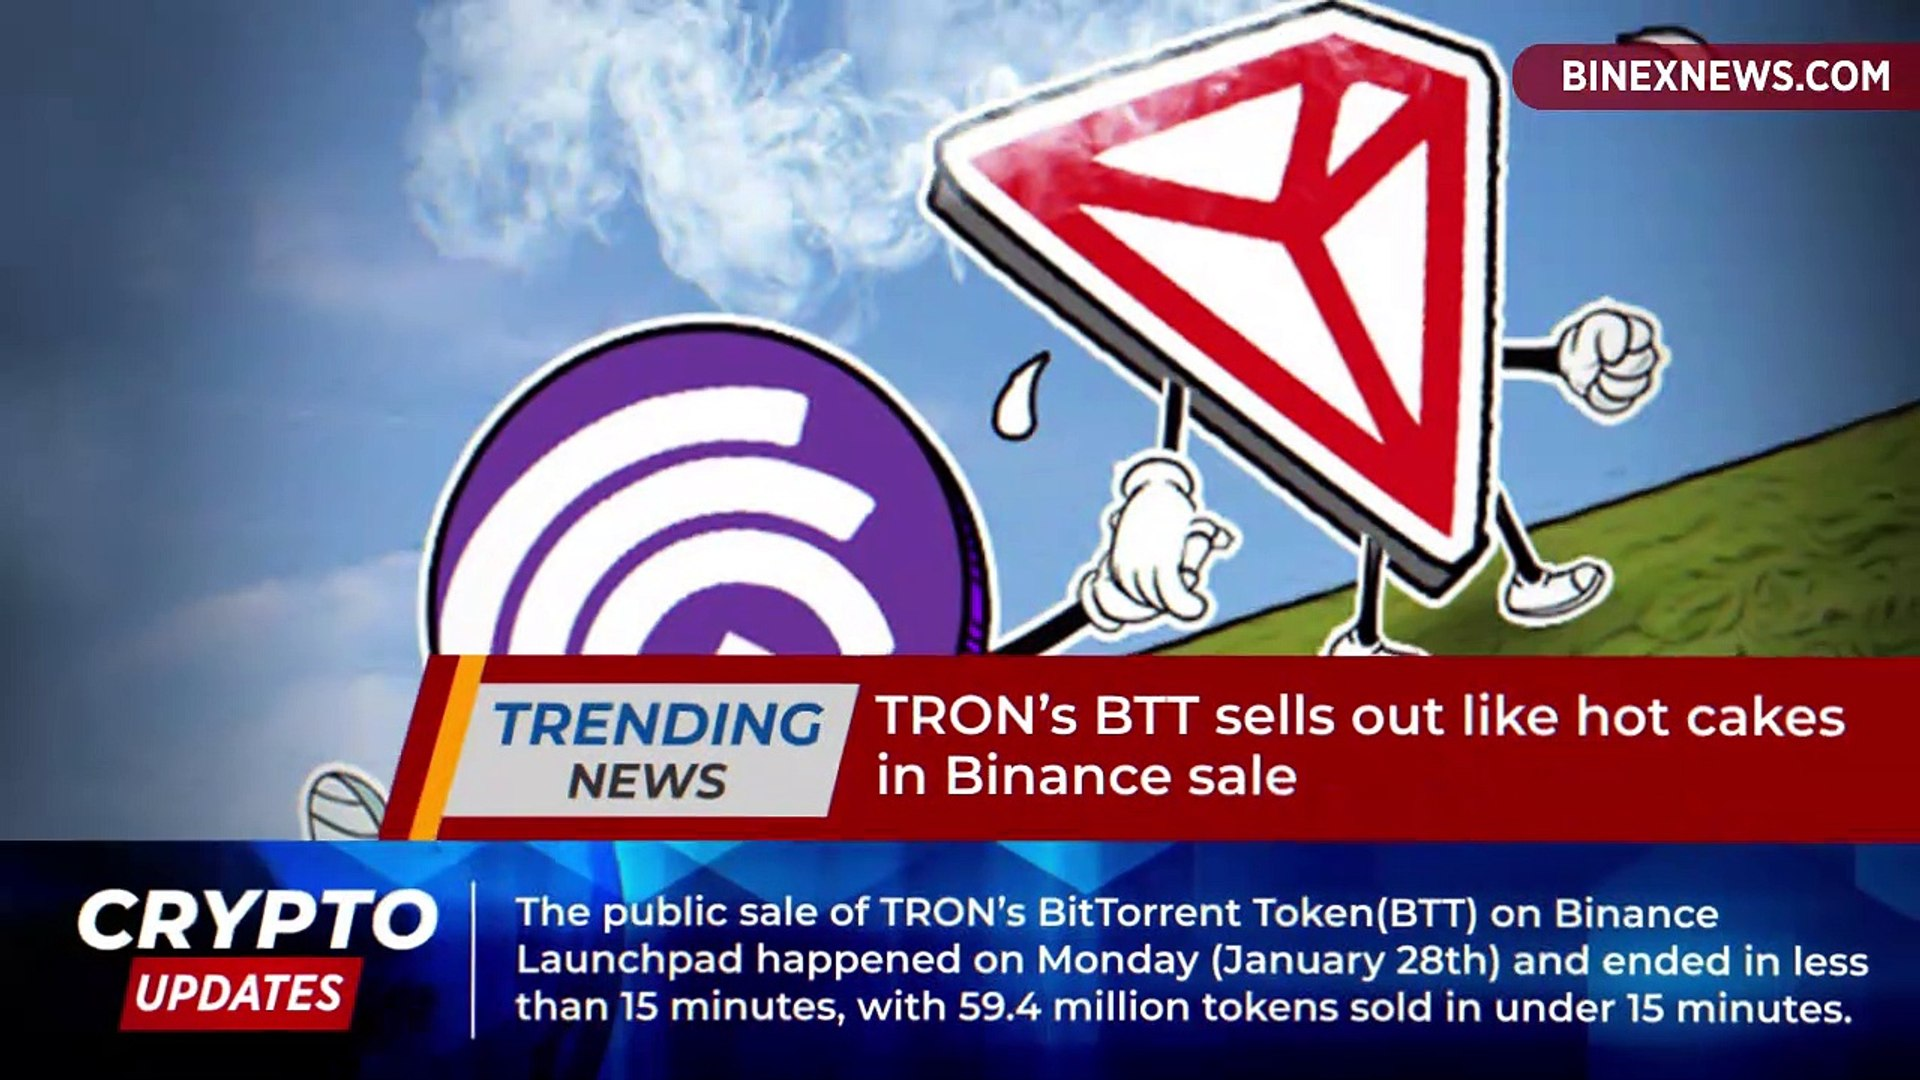 Here's What Happened at Tron's BTT Public Sale! - video